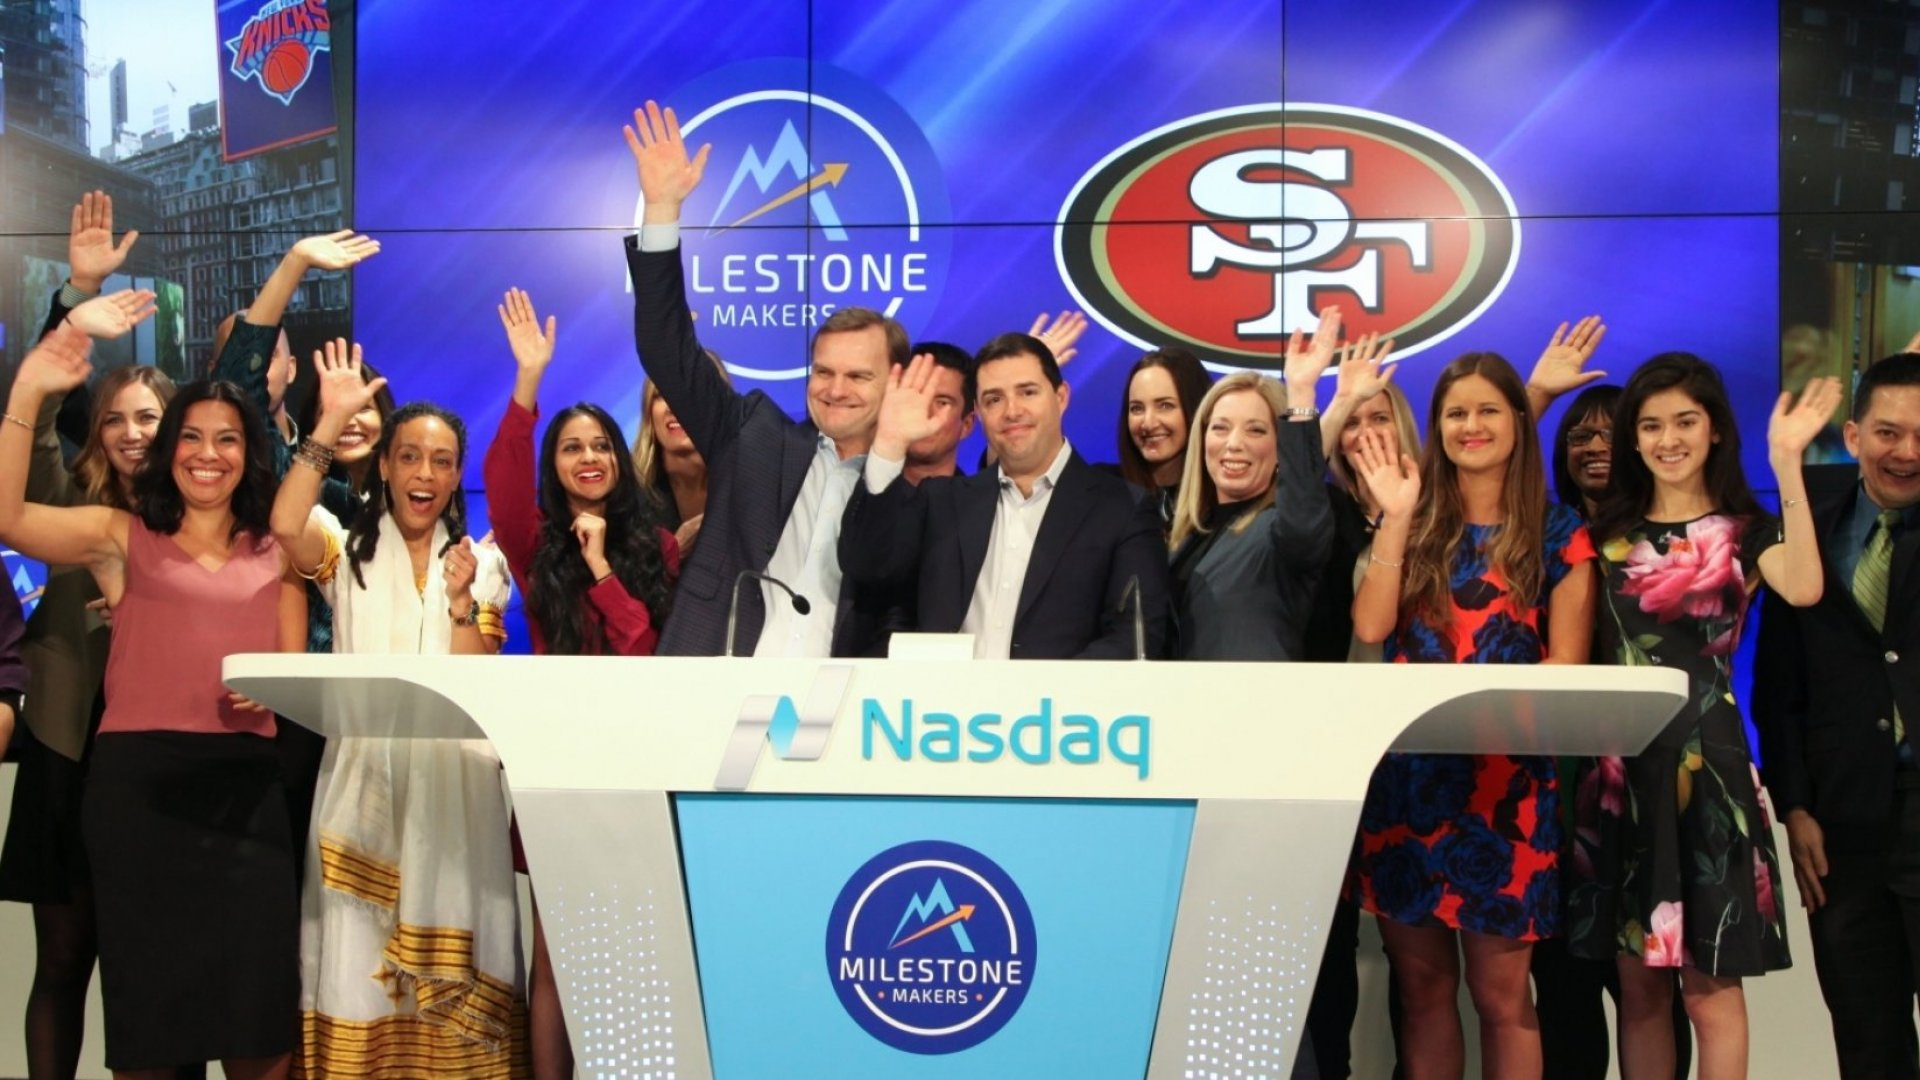 CEO of the San Francisco 49ers Jed York (center) rings the Nasdaq closing bell with Bruce Aust, Vice Chairman of Nasdaq (center L), Nicola Corzine, Executive Director at the Nasdaq Entrepreneurial Center (center R) and the second graduating class of entrepreneurs from the Center Milestone Makers program on April 11, 2017 inSan Francisco.